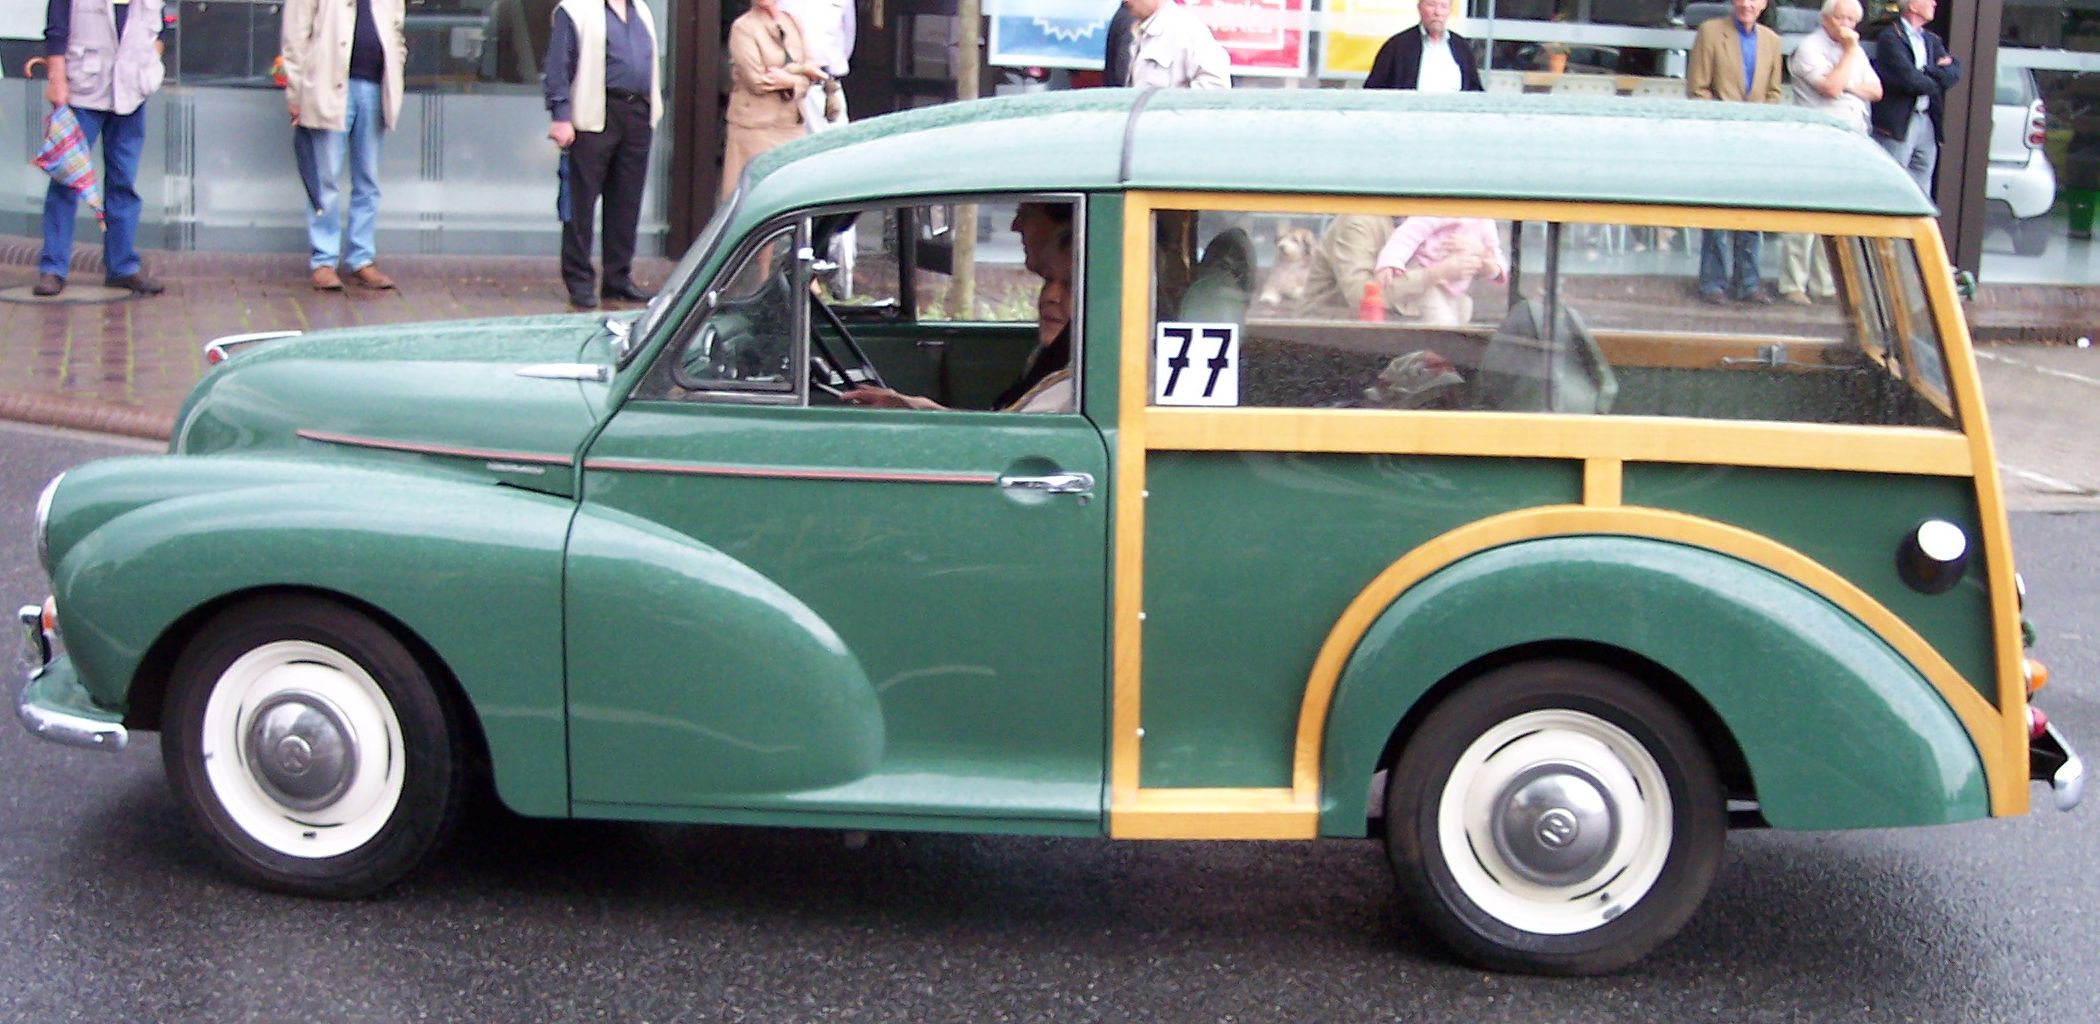 File:Morris Minor 1000 green woody l.jpg - Wikimedia Commons